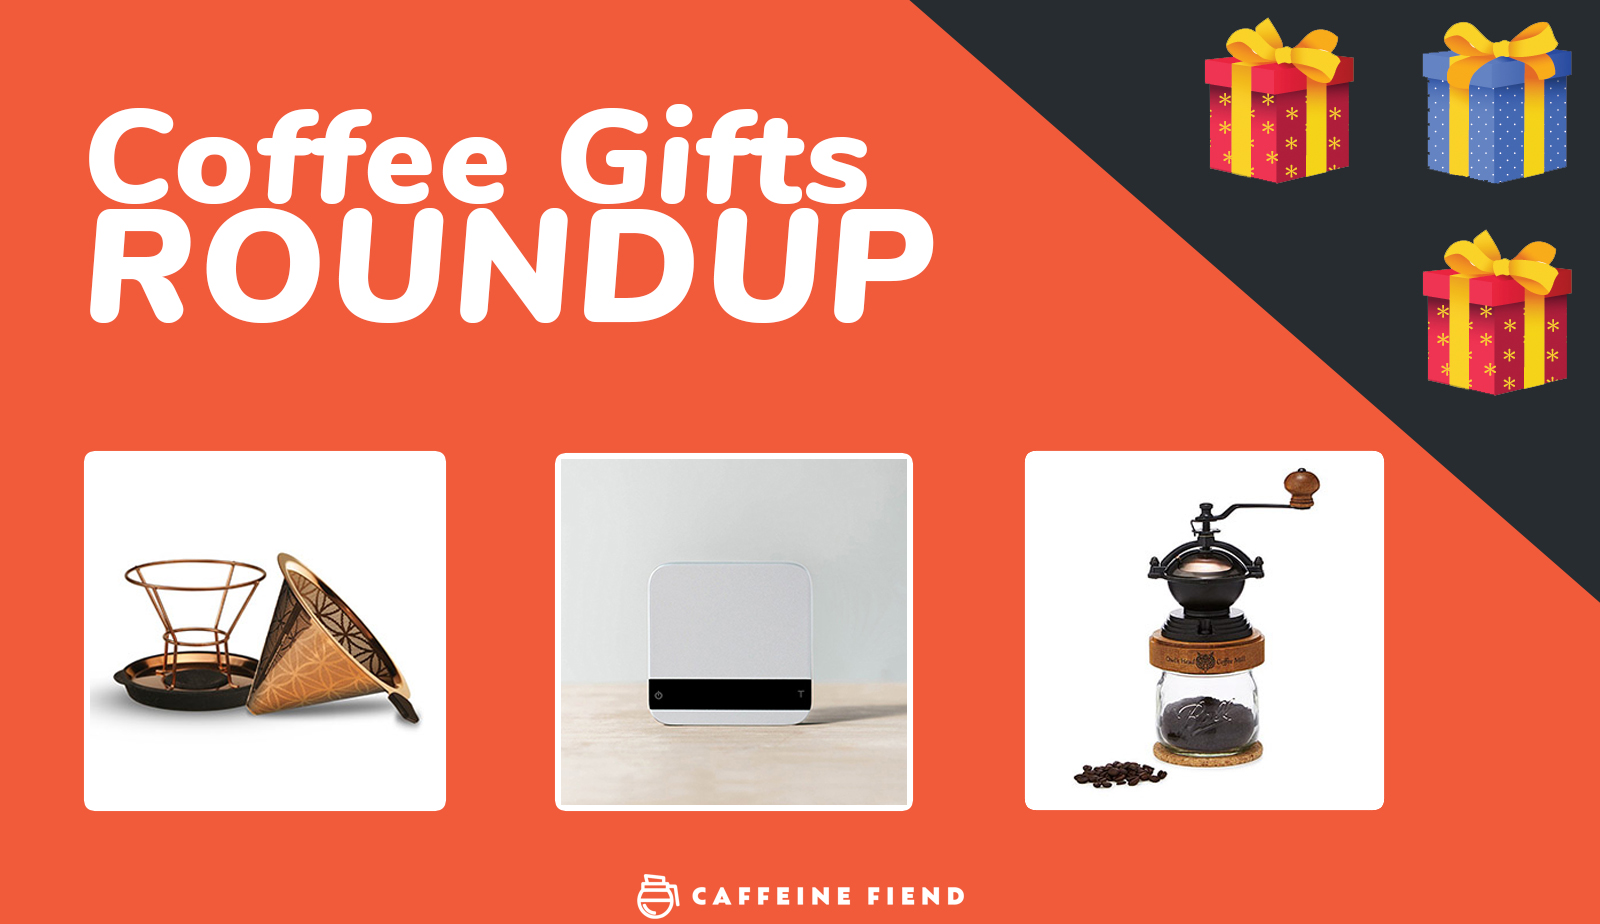 coffee gifts roundup article